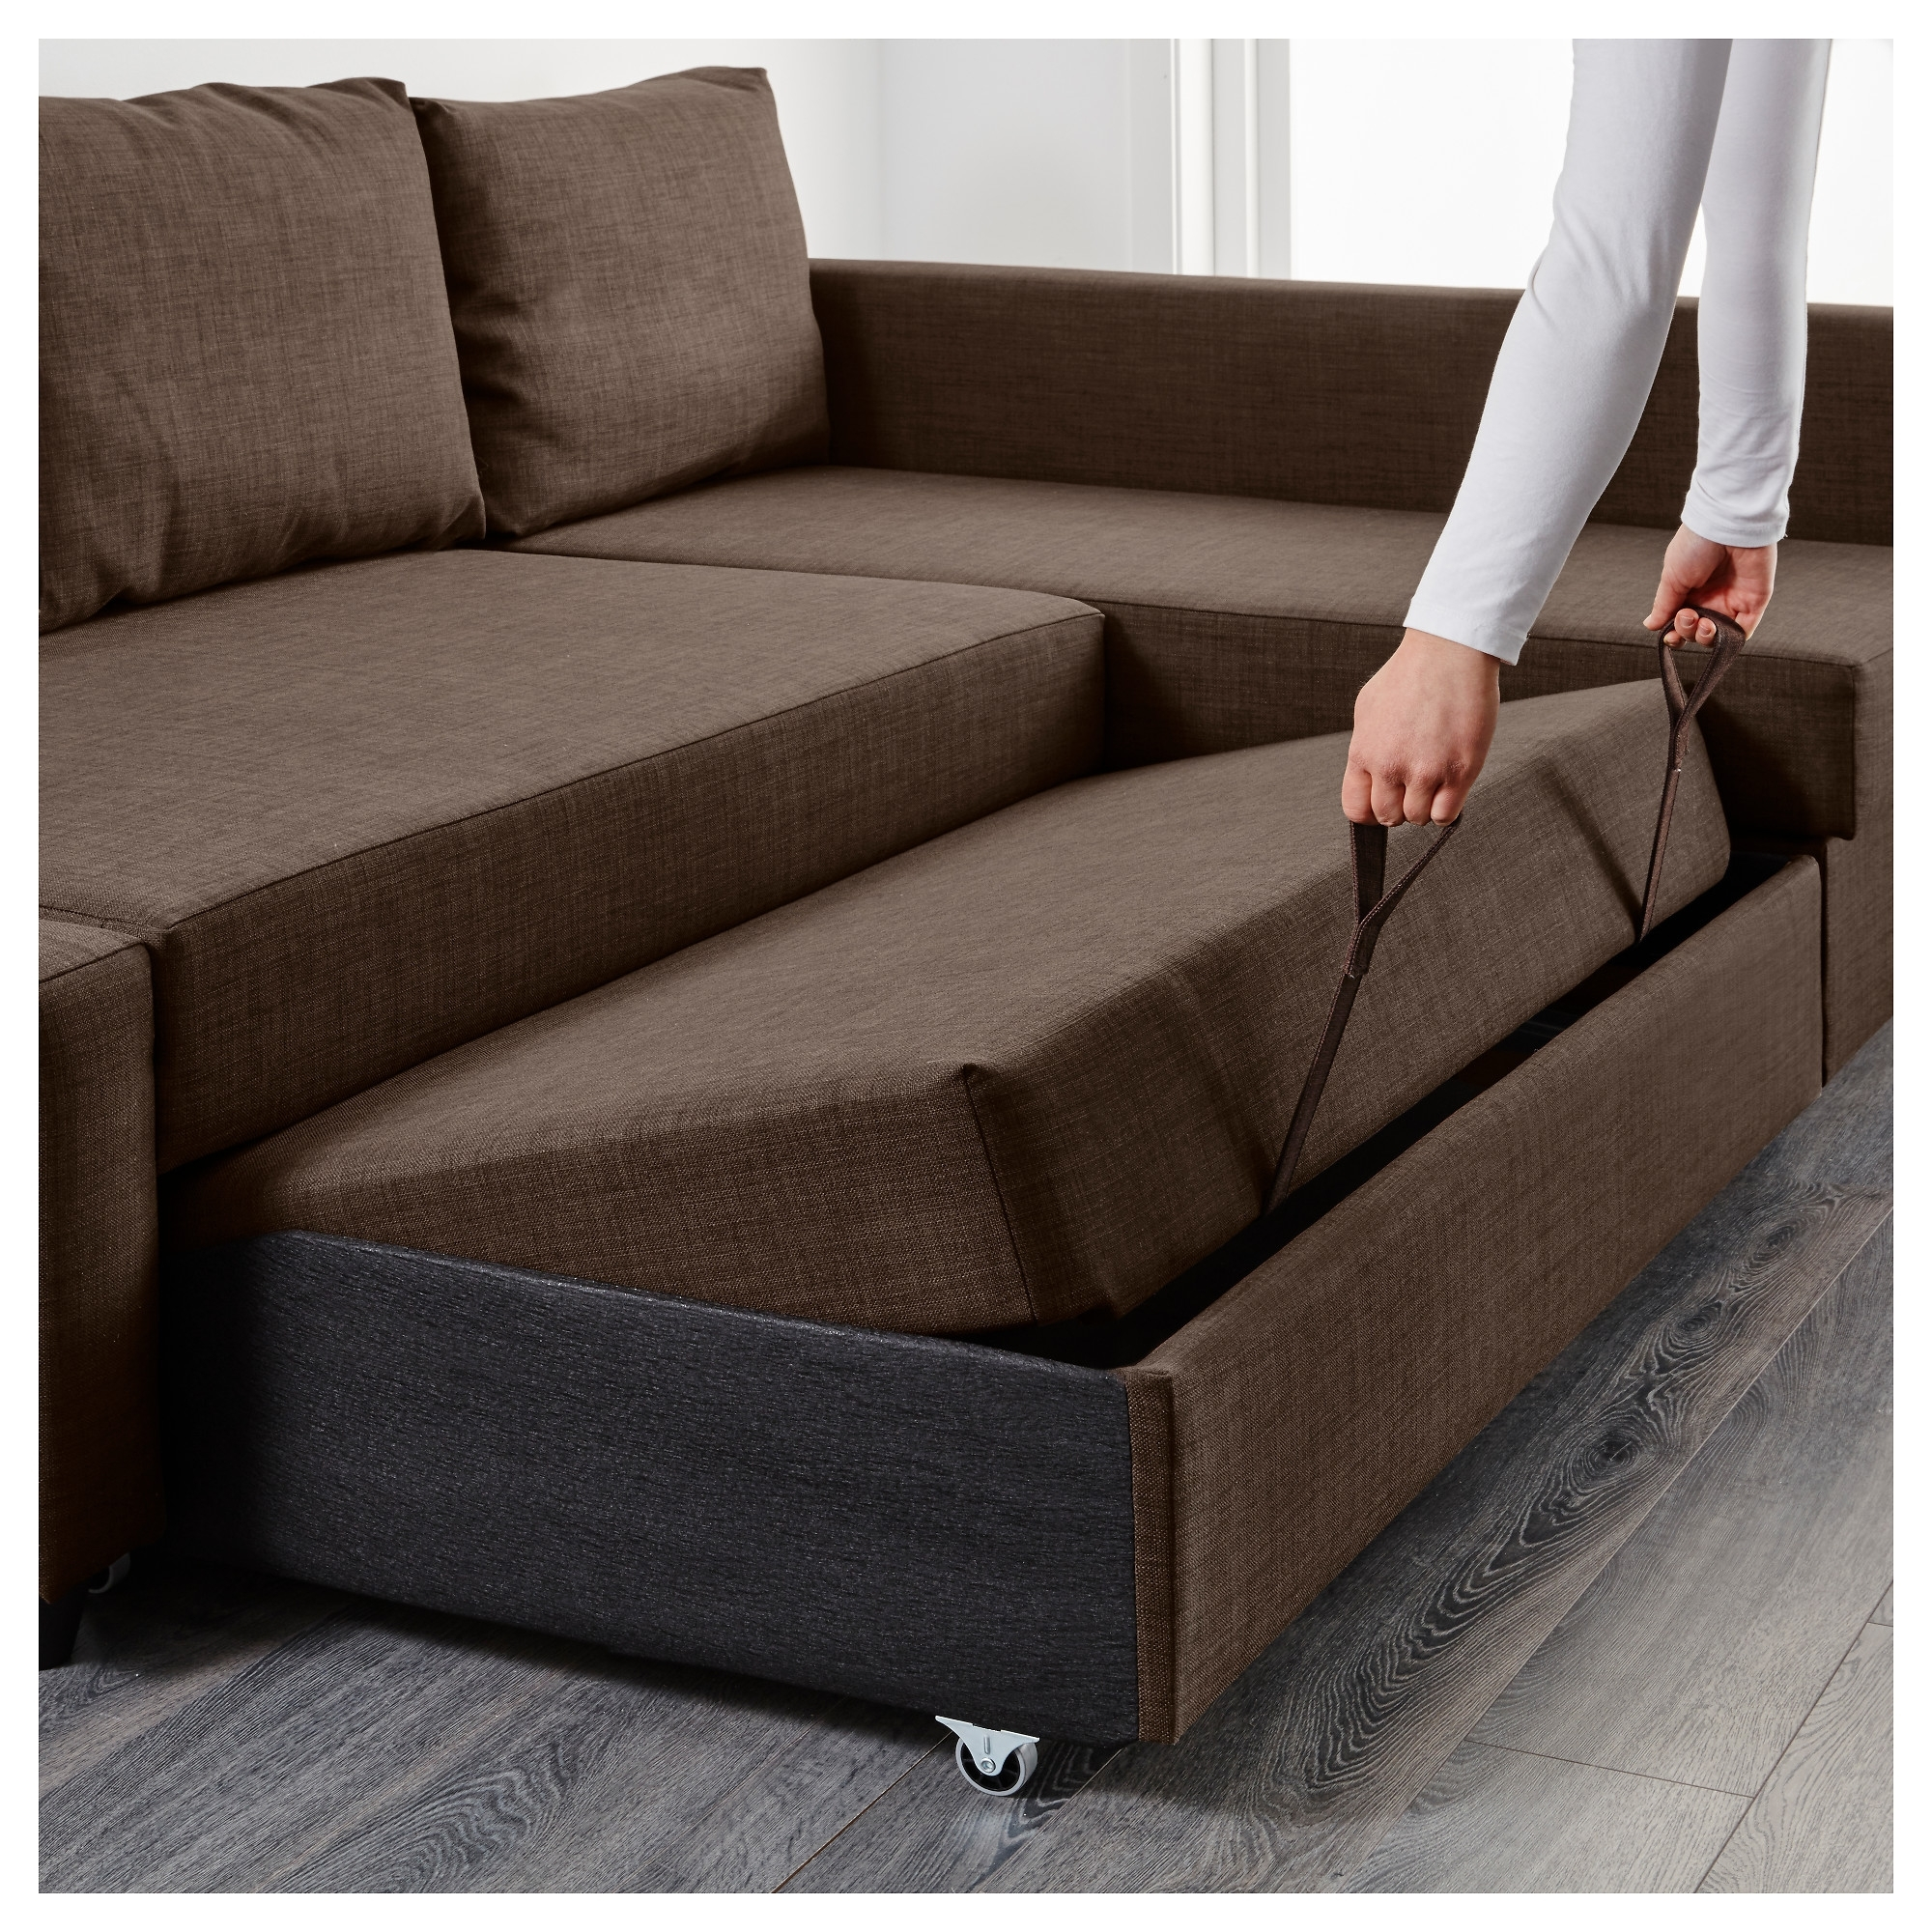 Recent Friheten Sleeper Sectional,3 Seat W/storage – Skiftebo Dark Gray With Removable Covers Sectional Sofas (View 11 of 20)